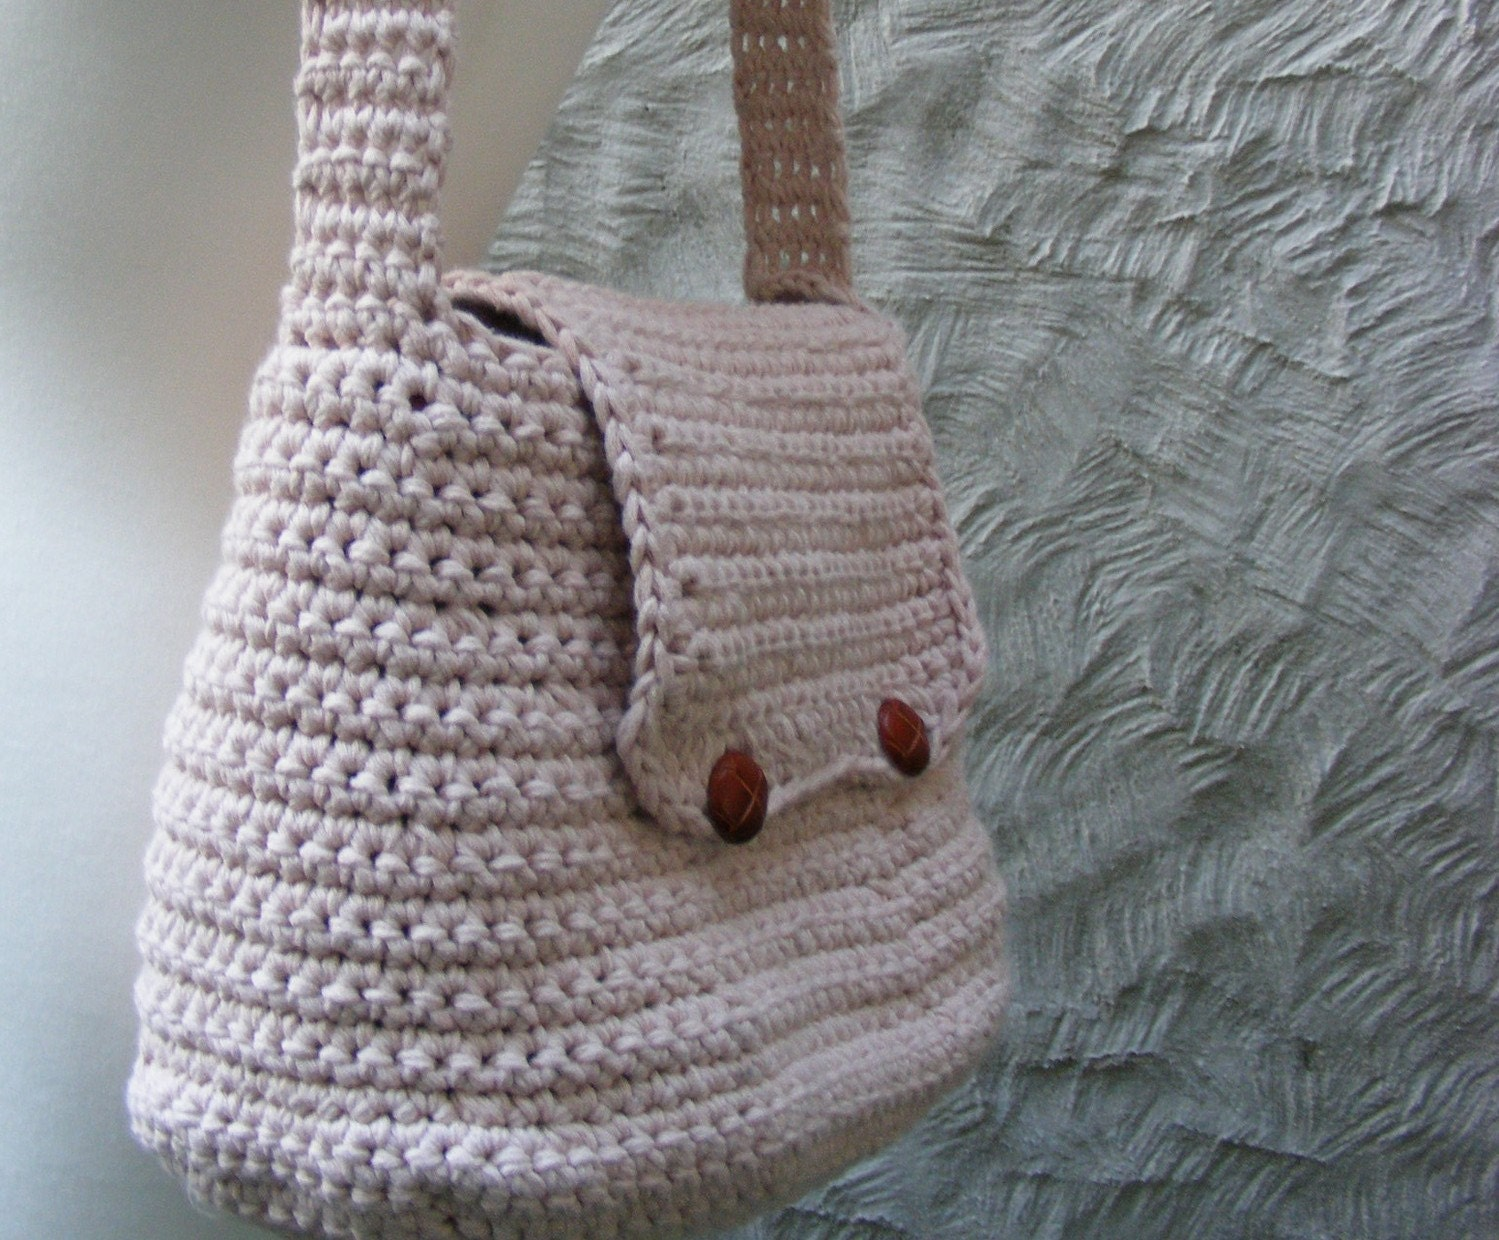 Crochet Patterns For Beginners Bag Patterns Crochet Hobo Bag